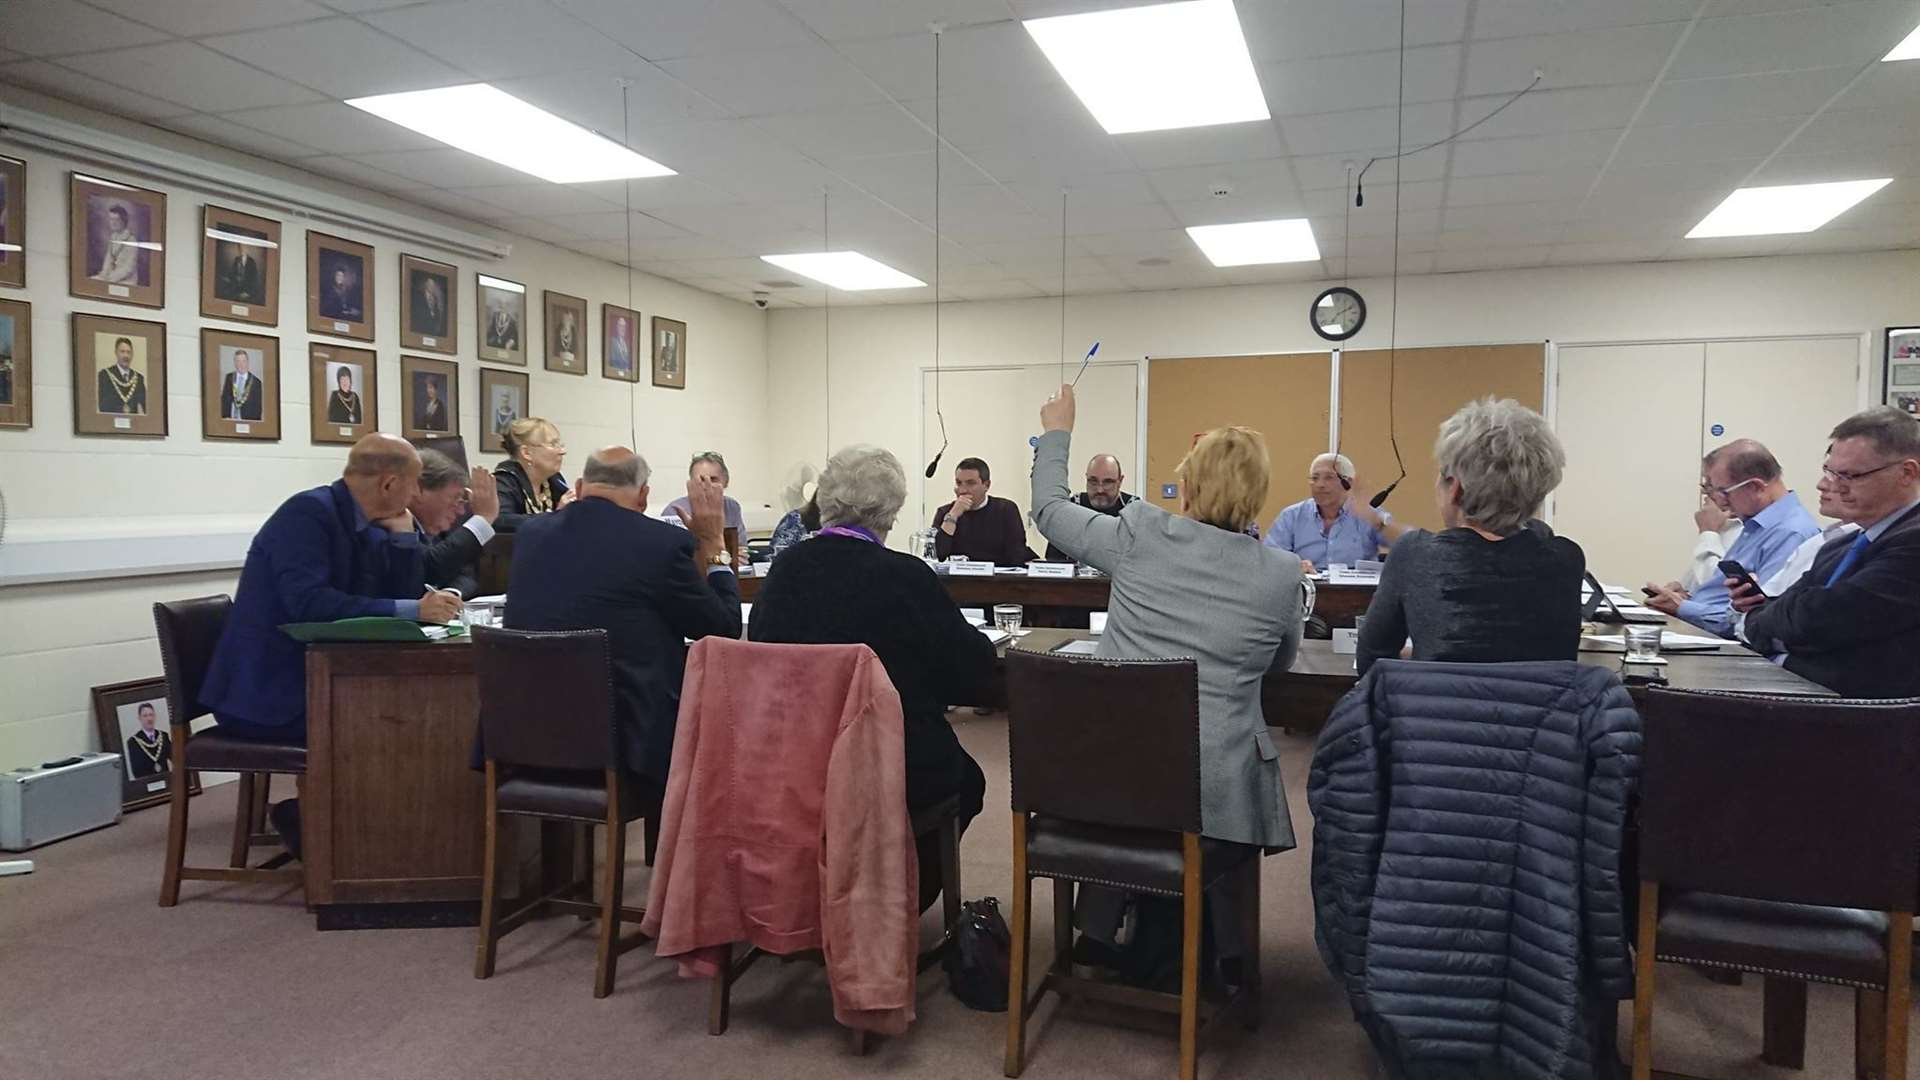 Swaffham councillors discussed the Tesco Milngate reimbursement during a council meeting last week